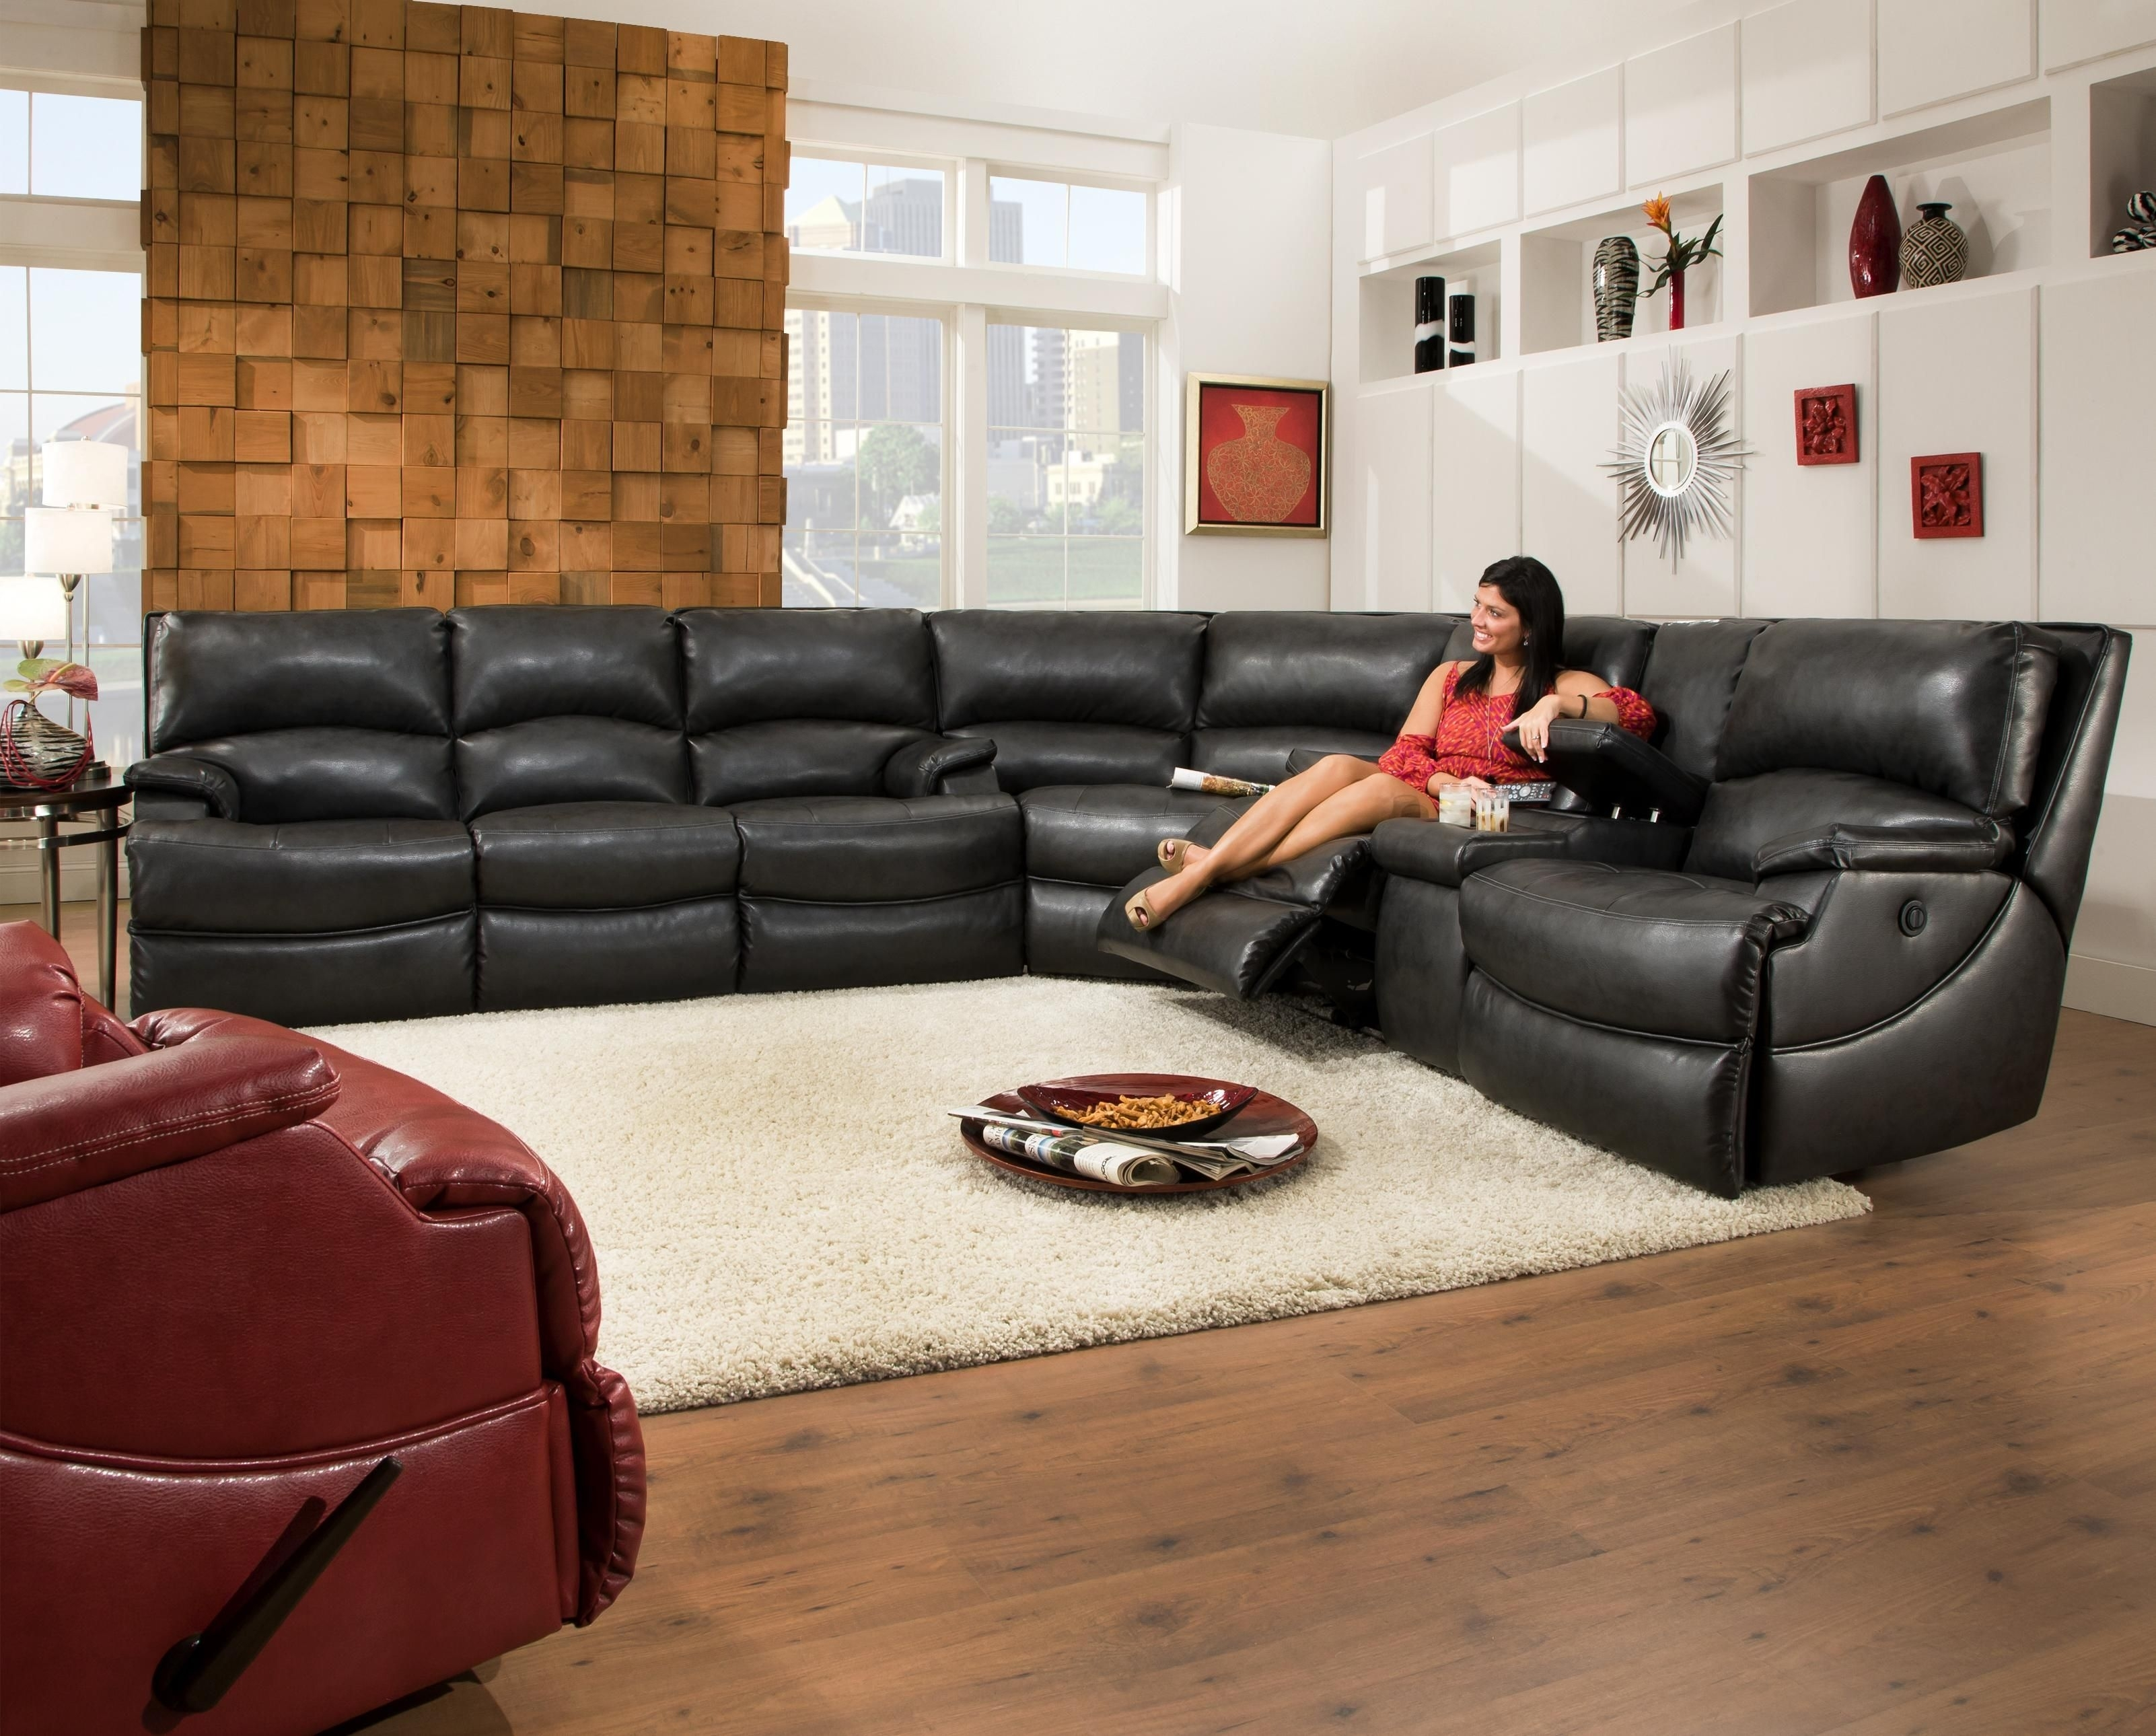 Southern Motion Shazam Six Seat Reclining Sectional Sofa With Cup Inside Tampa Sectional Sofas (Image 9 of 10)